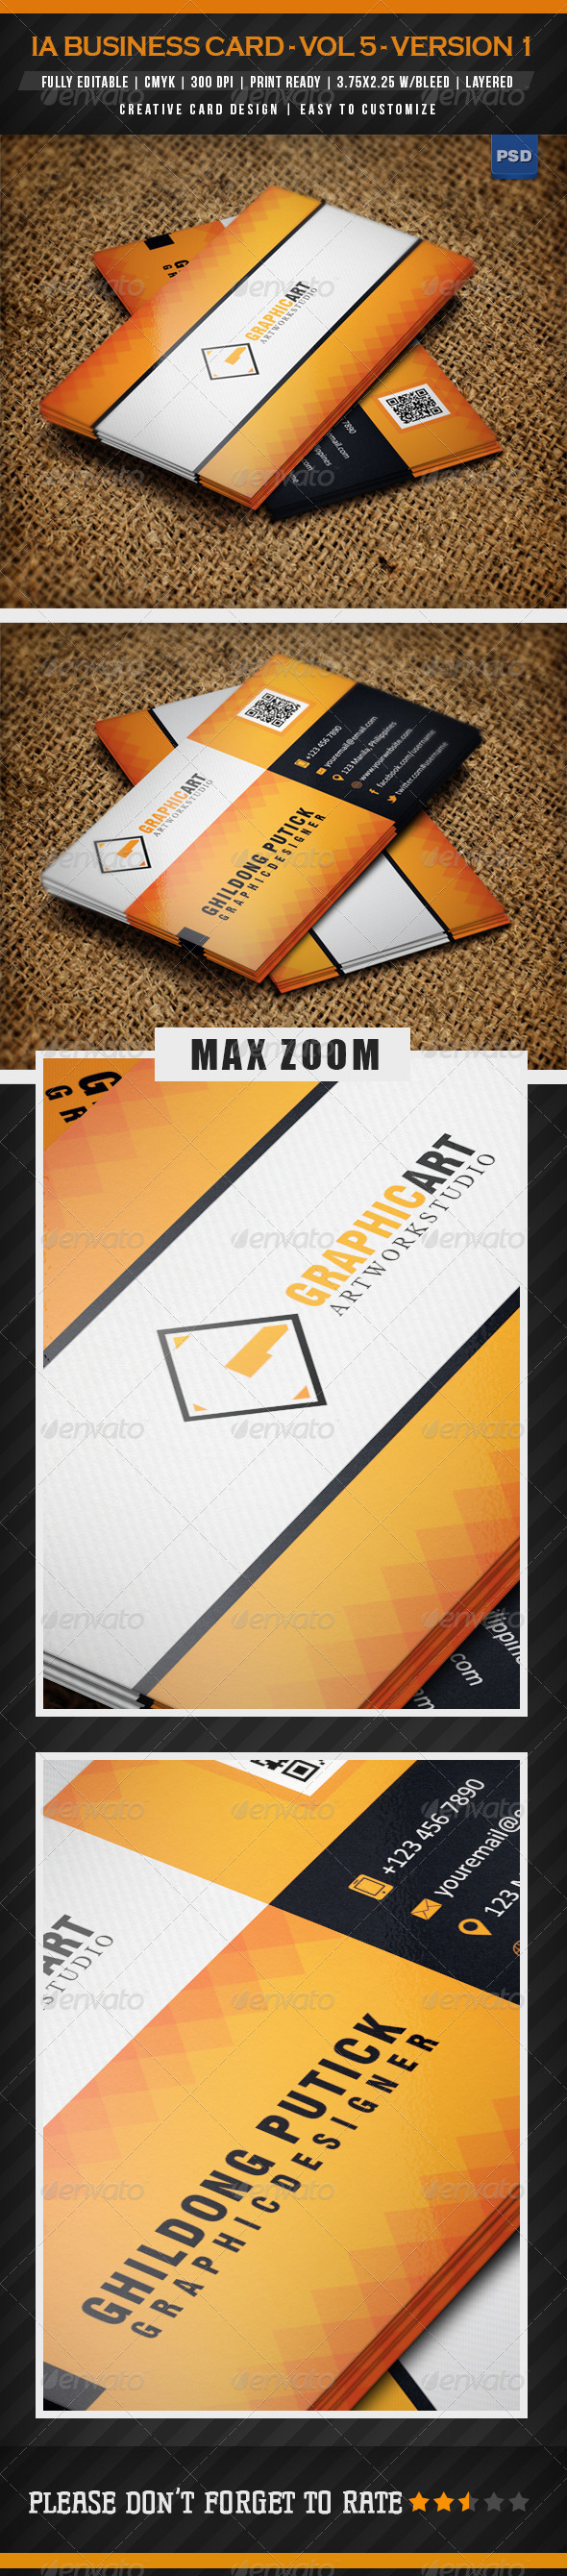 GraphicRiver IA Business Card Vol 5 Version 1 4991033